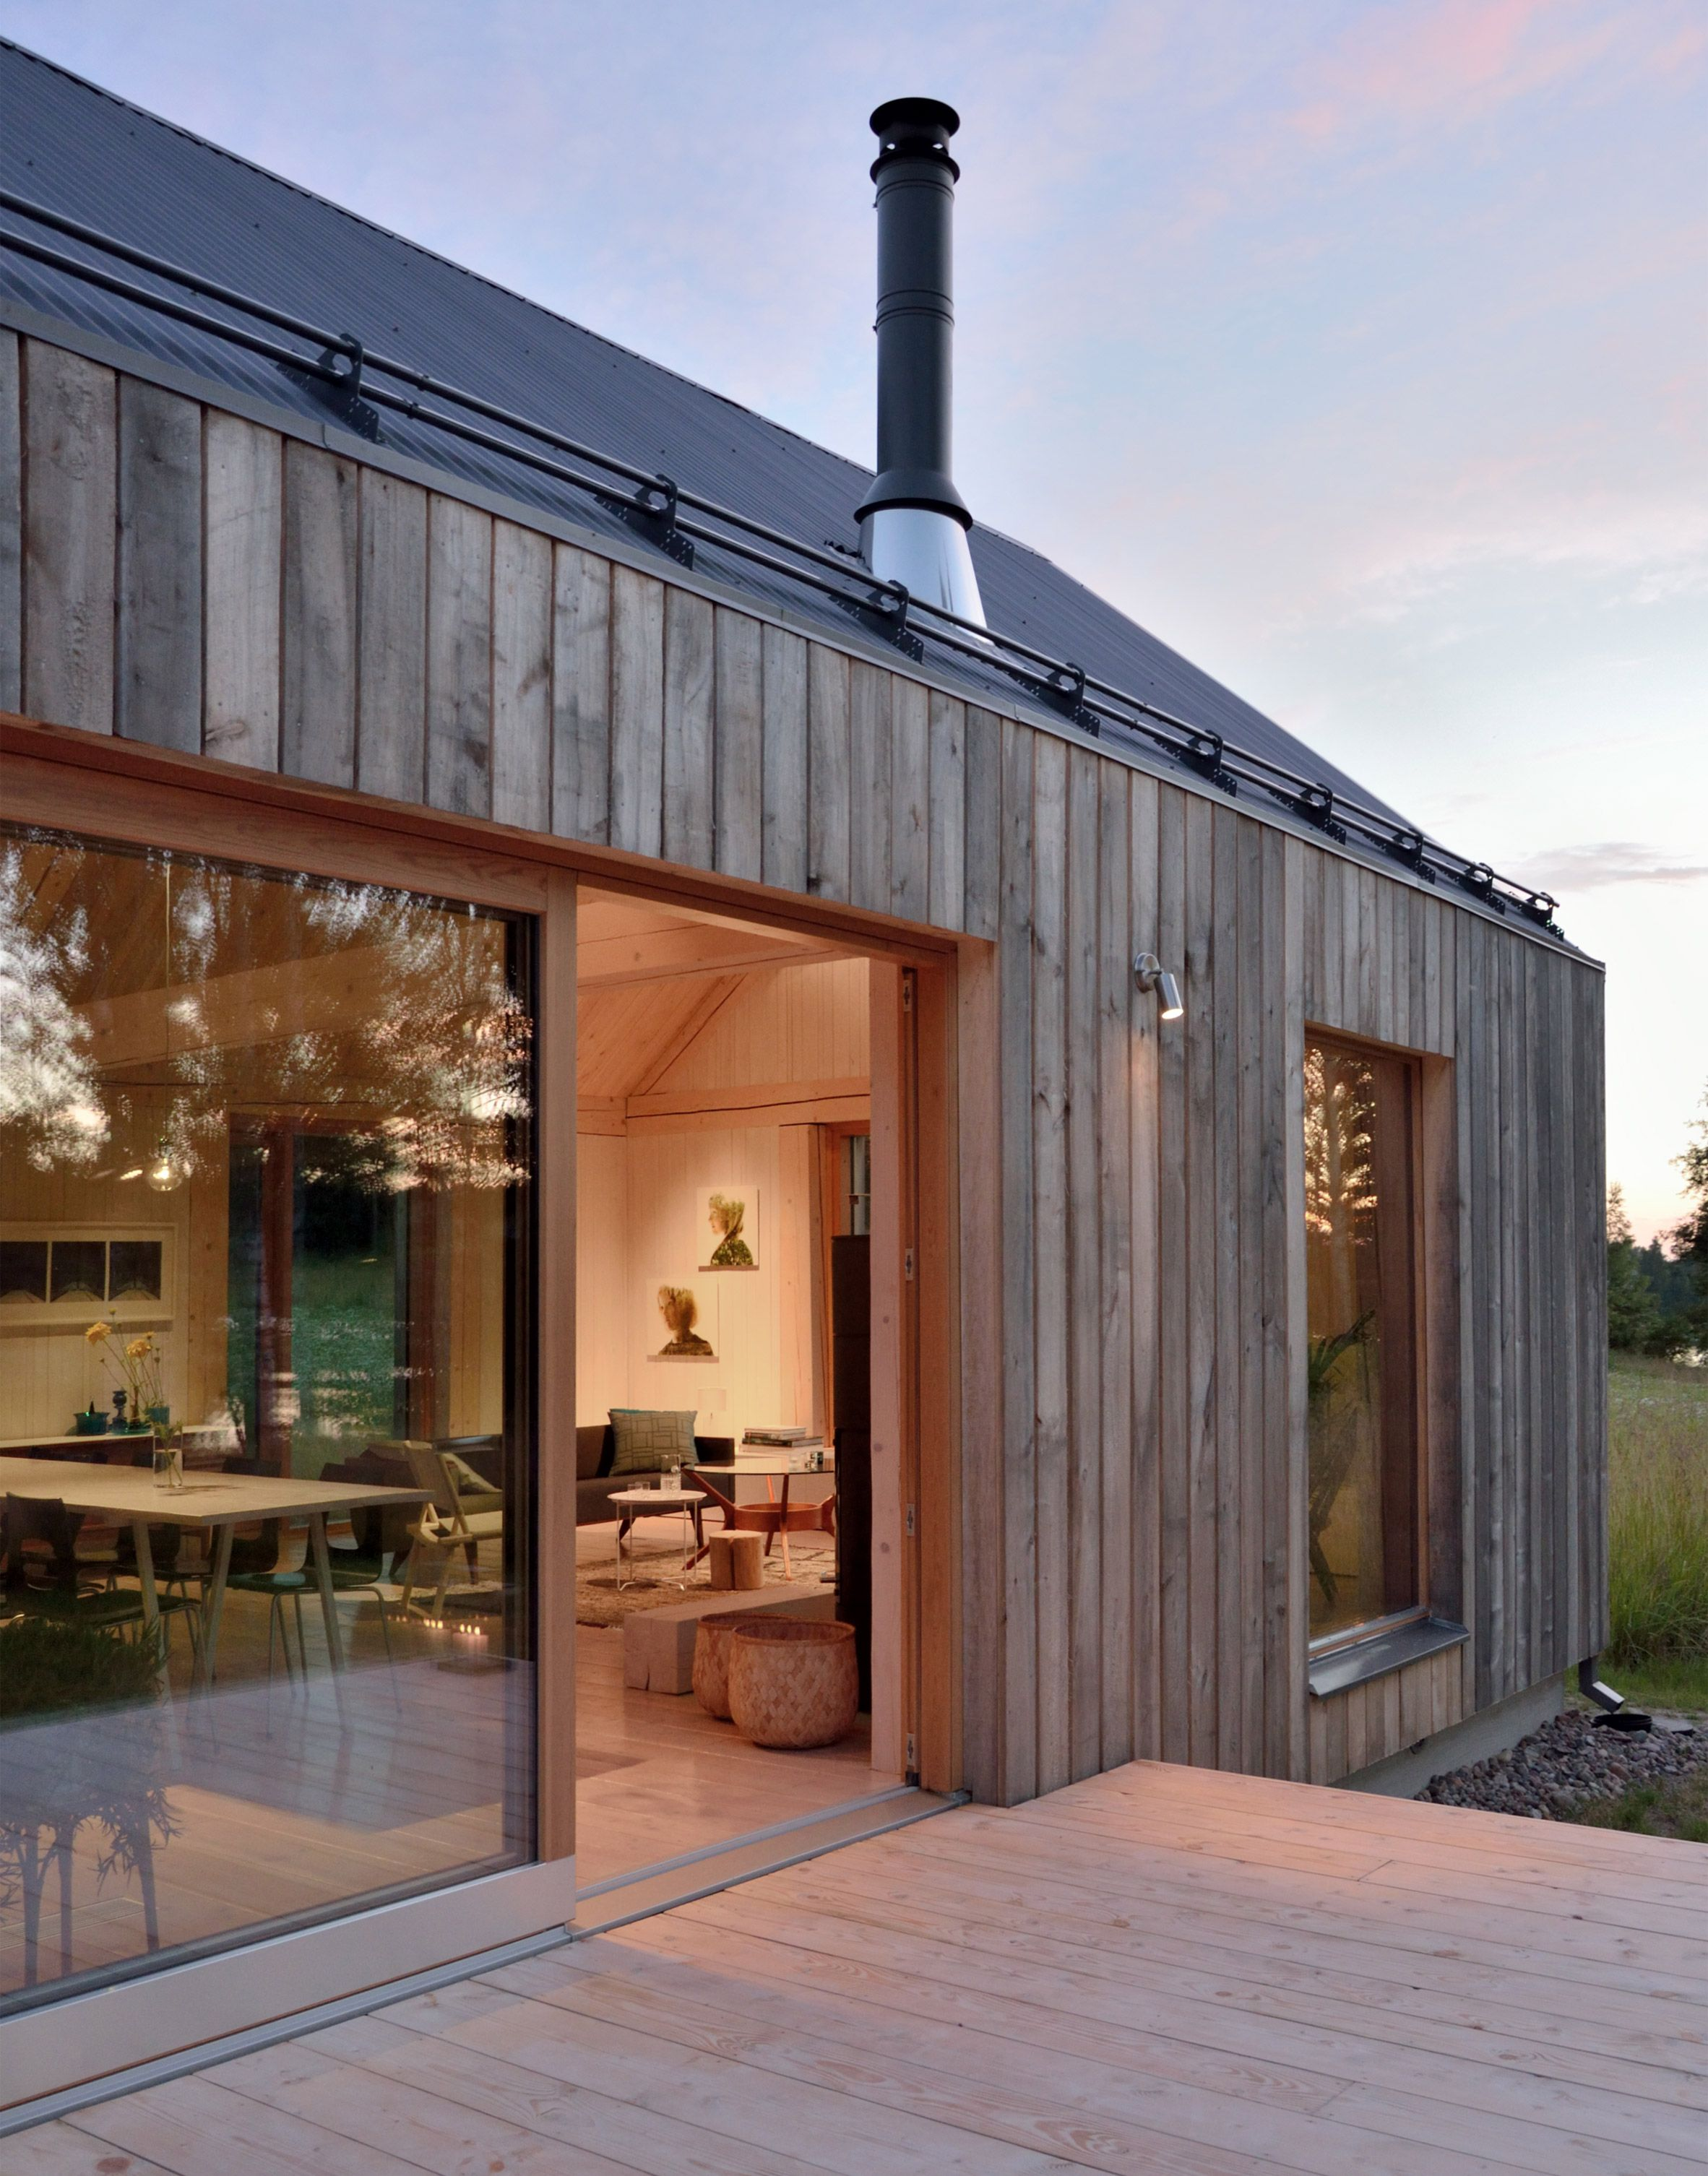 Finnish Lakehouse Keeps Things Simple MNy Arkitekter